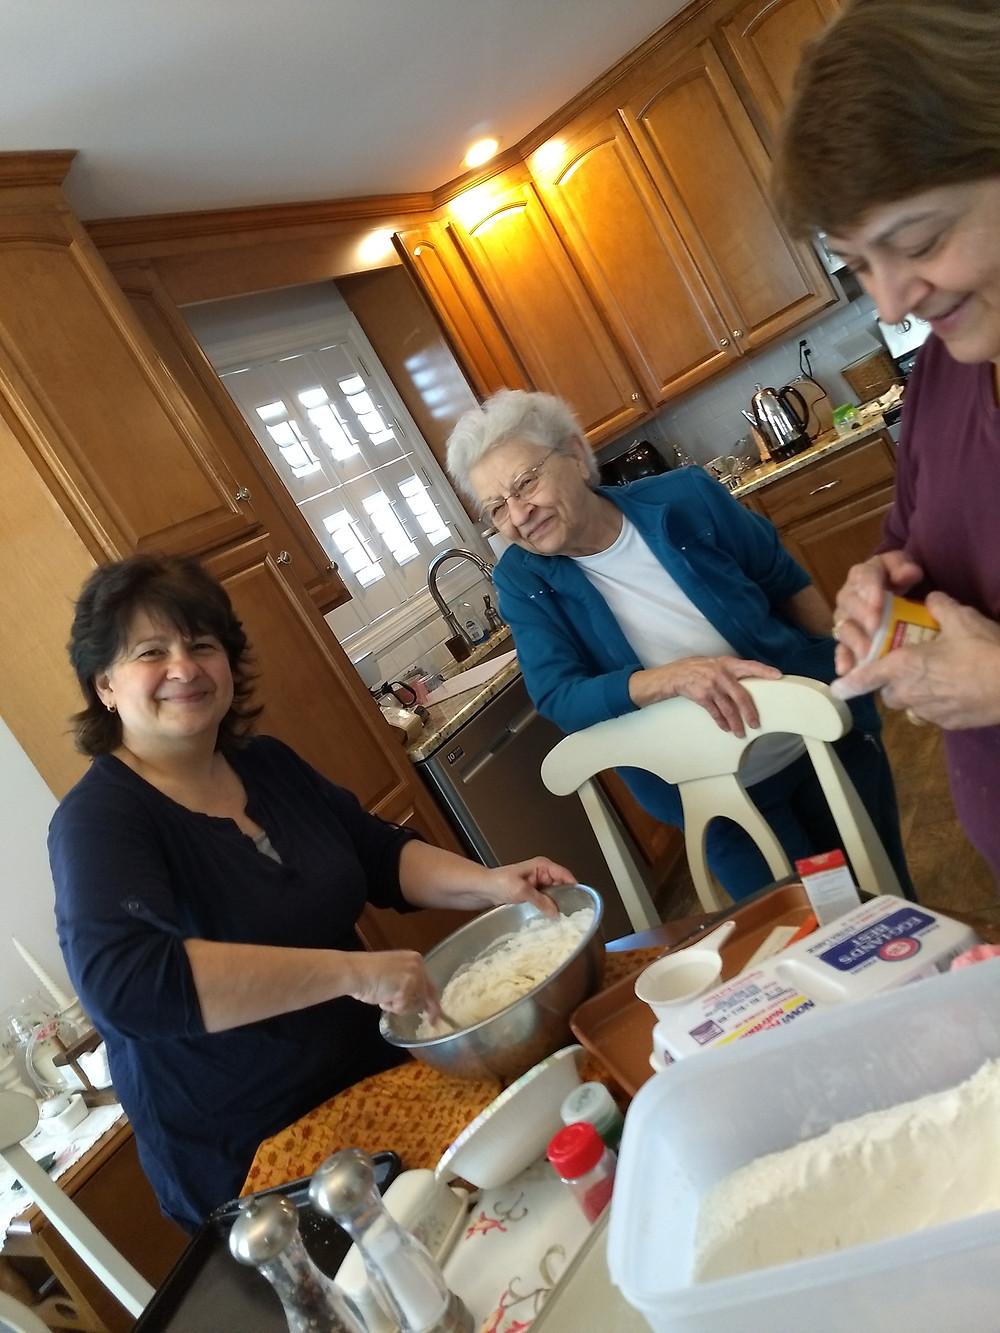 We had lots of fun baking with Mom today!